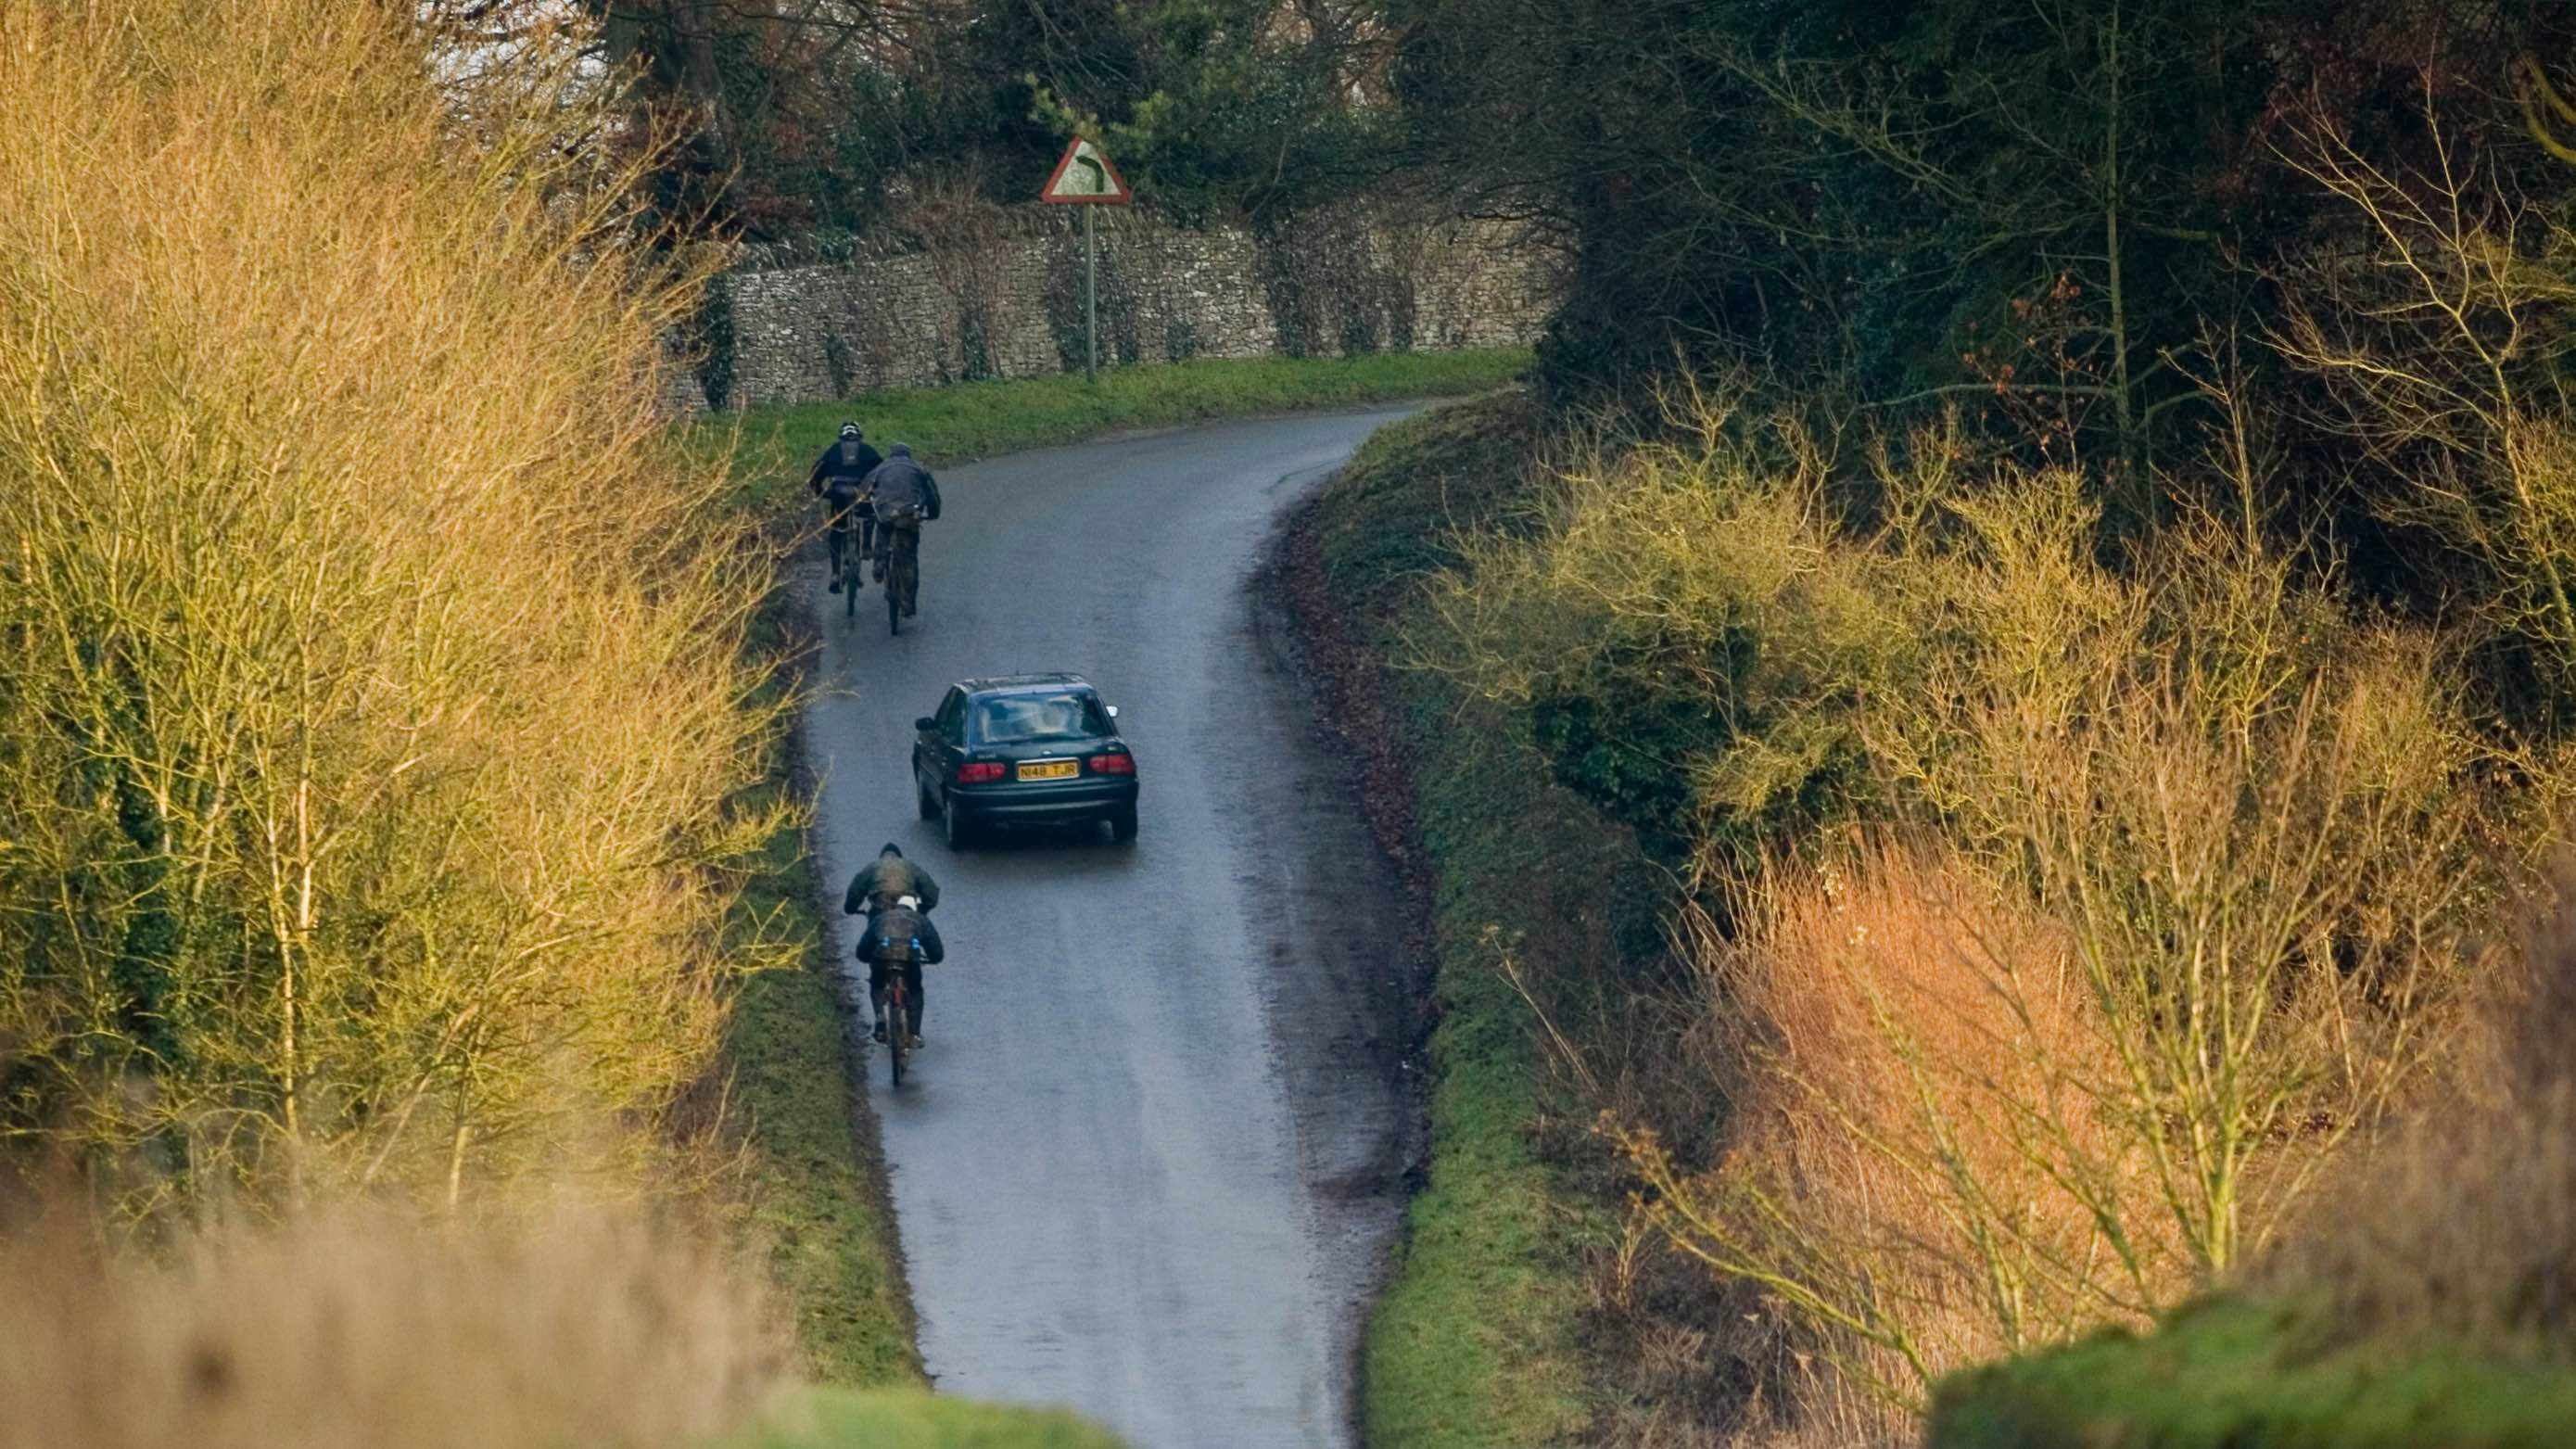 It's official, nearly a quarter of UK motorists find cyclists annoying